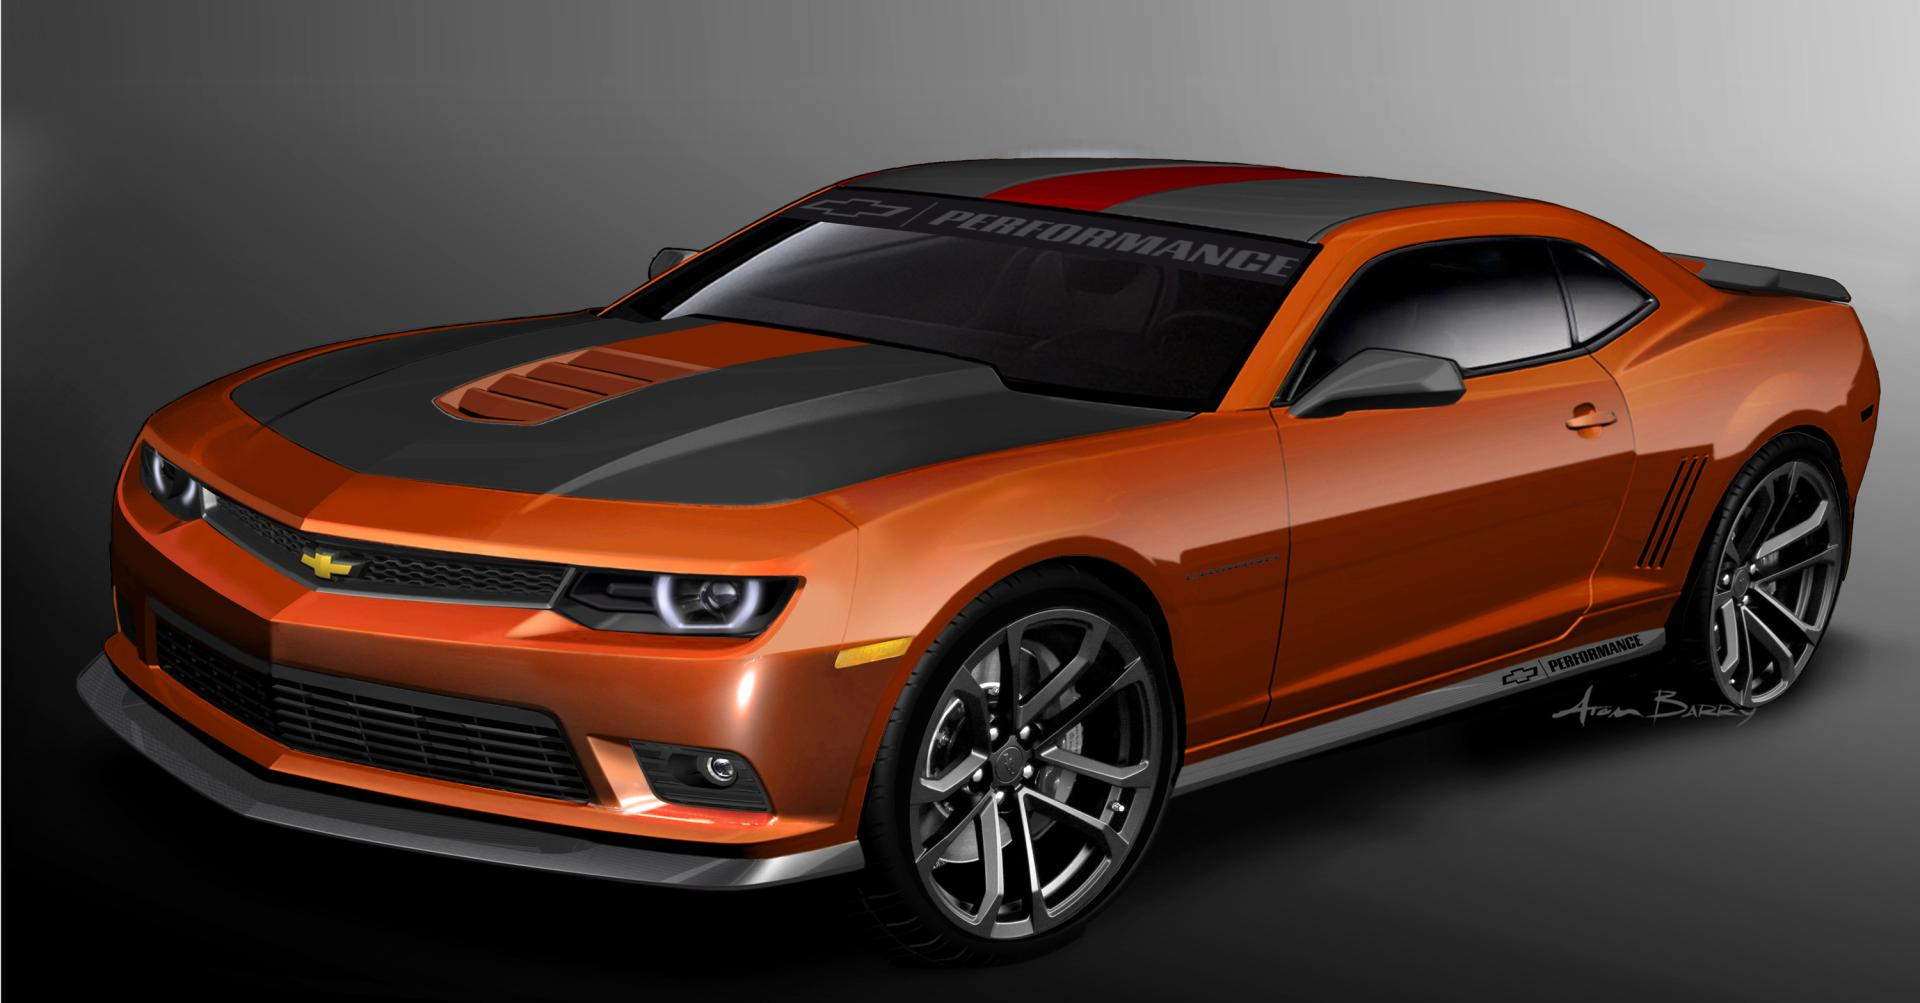 2013 Chevrolet Garage Camaro Concept News And Information